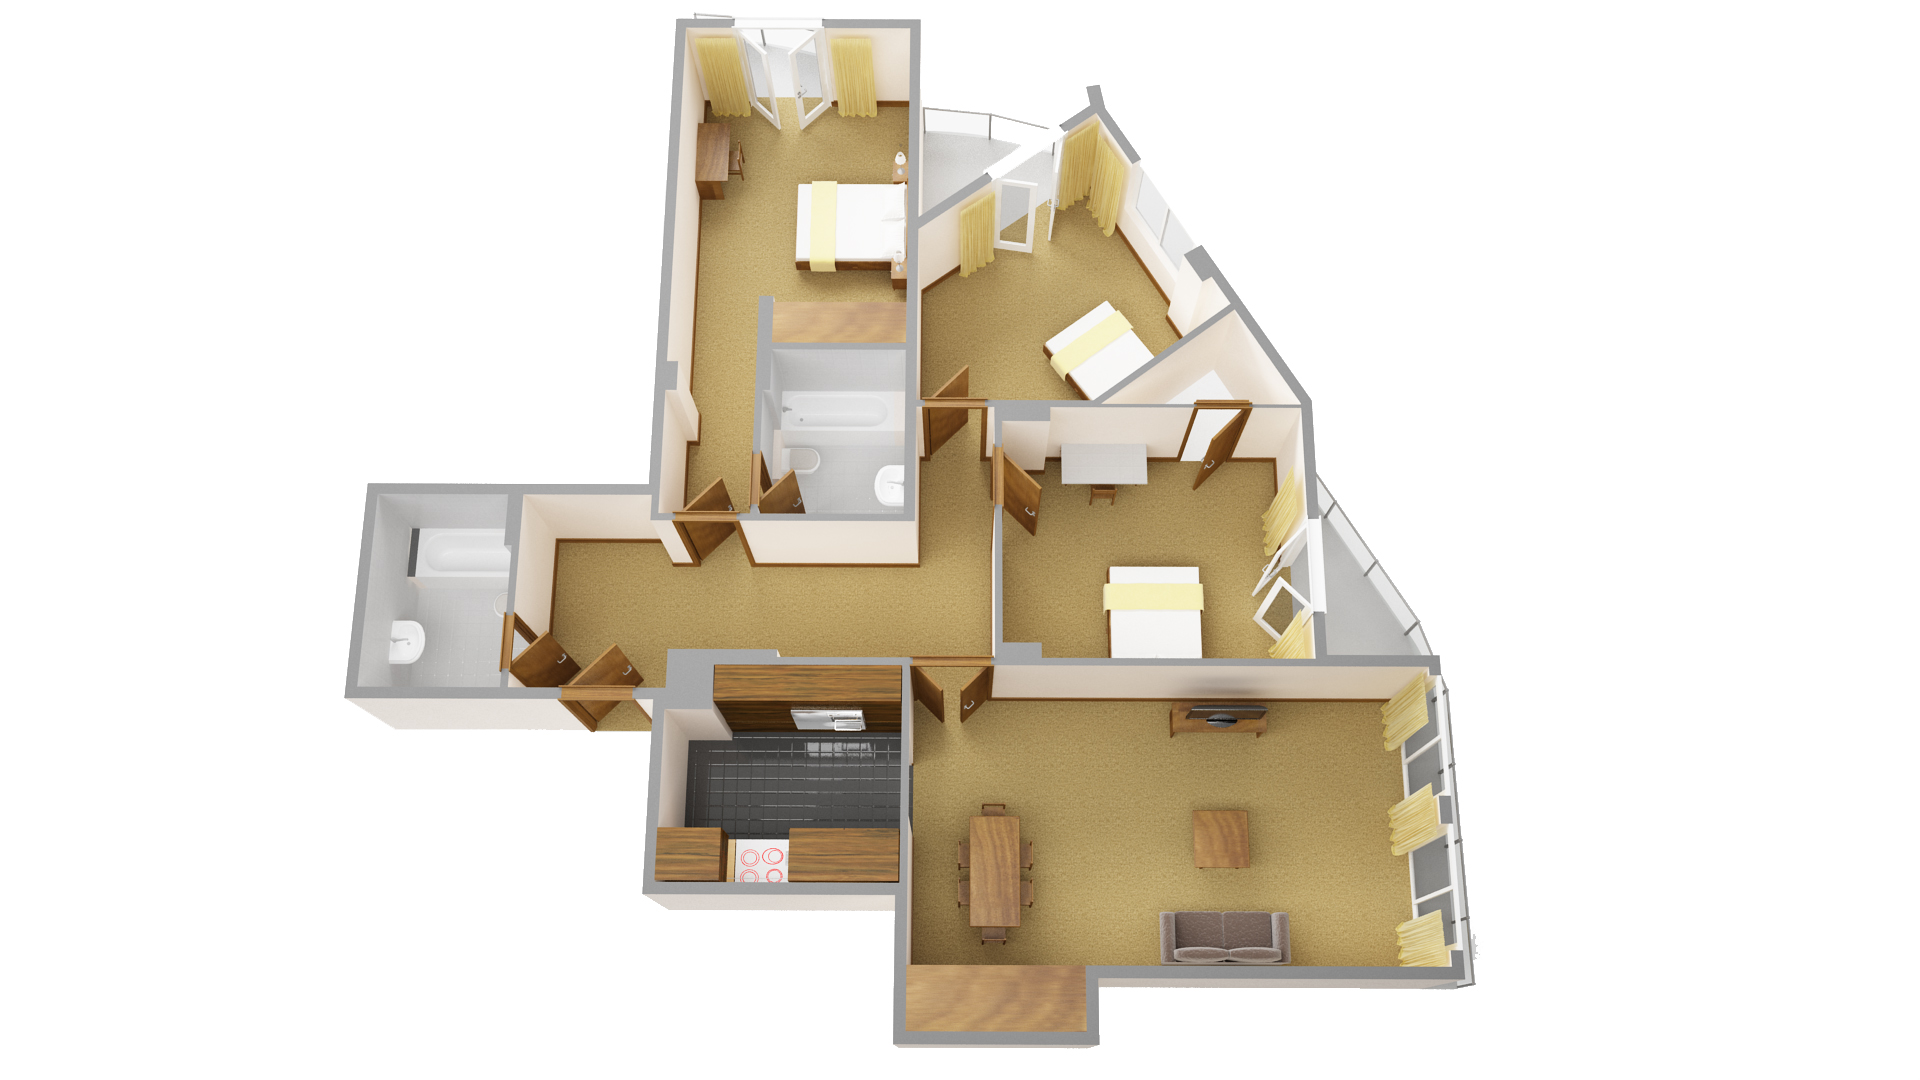 Fourth floor plan at Sanctum Maida Vale